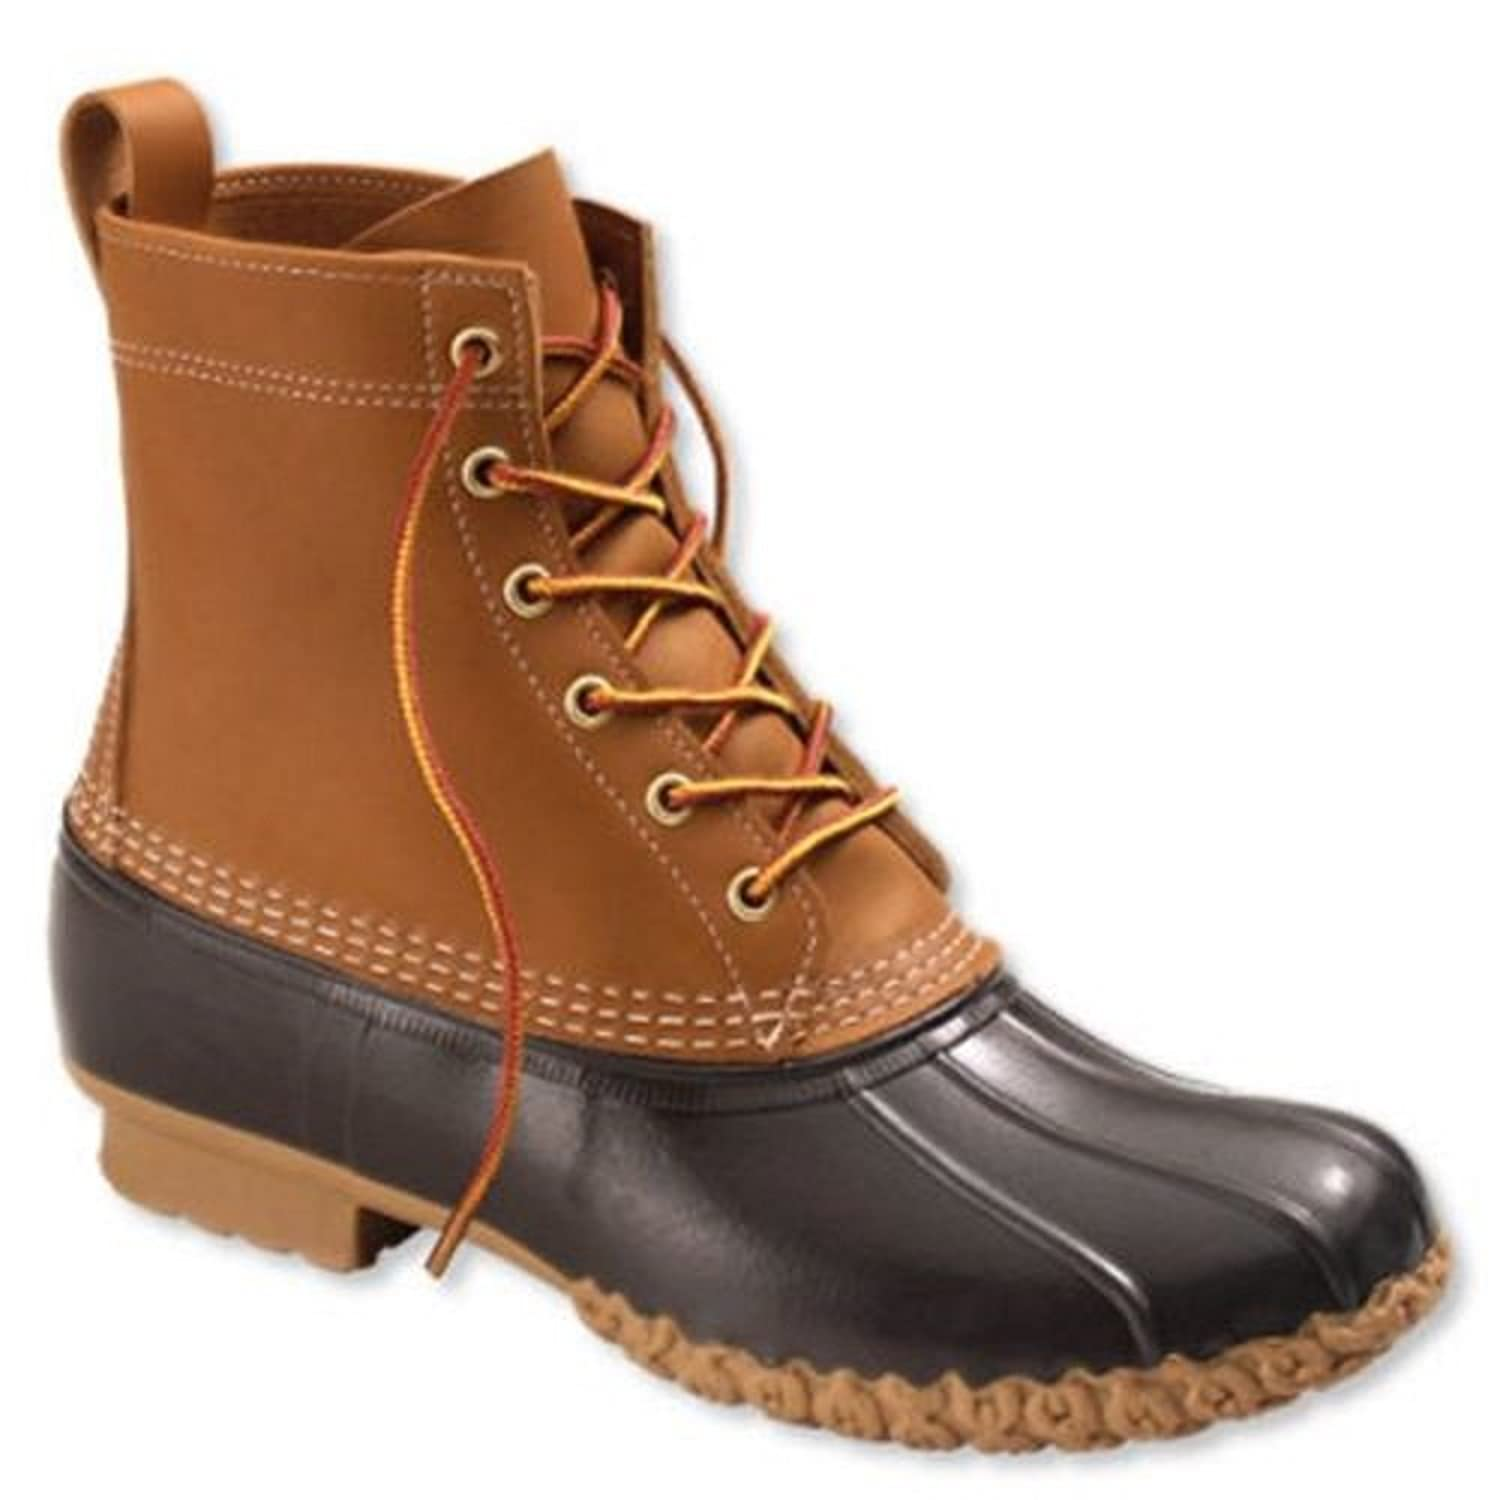 You searched for: ll bean duck boots. Good news! Etsy has thousands of handcrafted and vintage products that perfectly fit what you're searching for. Discover all the extraordinary items our community of craftspeople have to offer and find the perfect gift for your loved one (or yourself!) today.